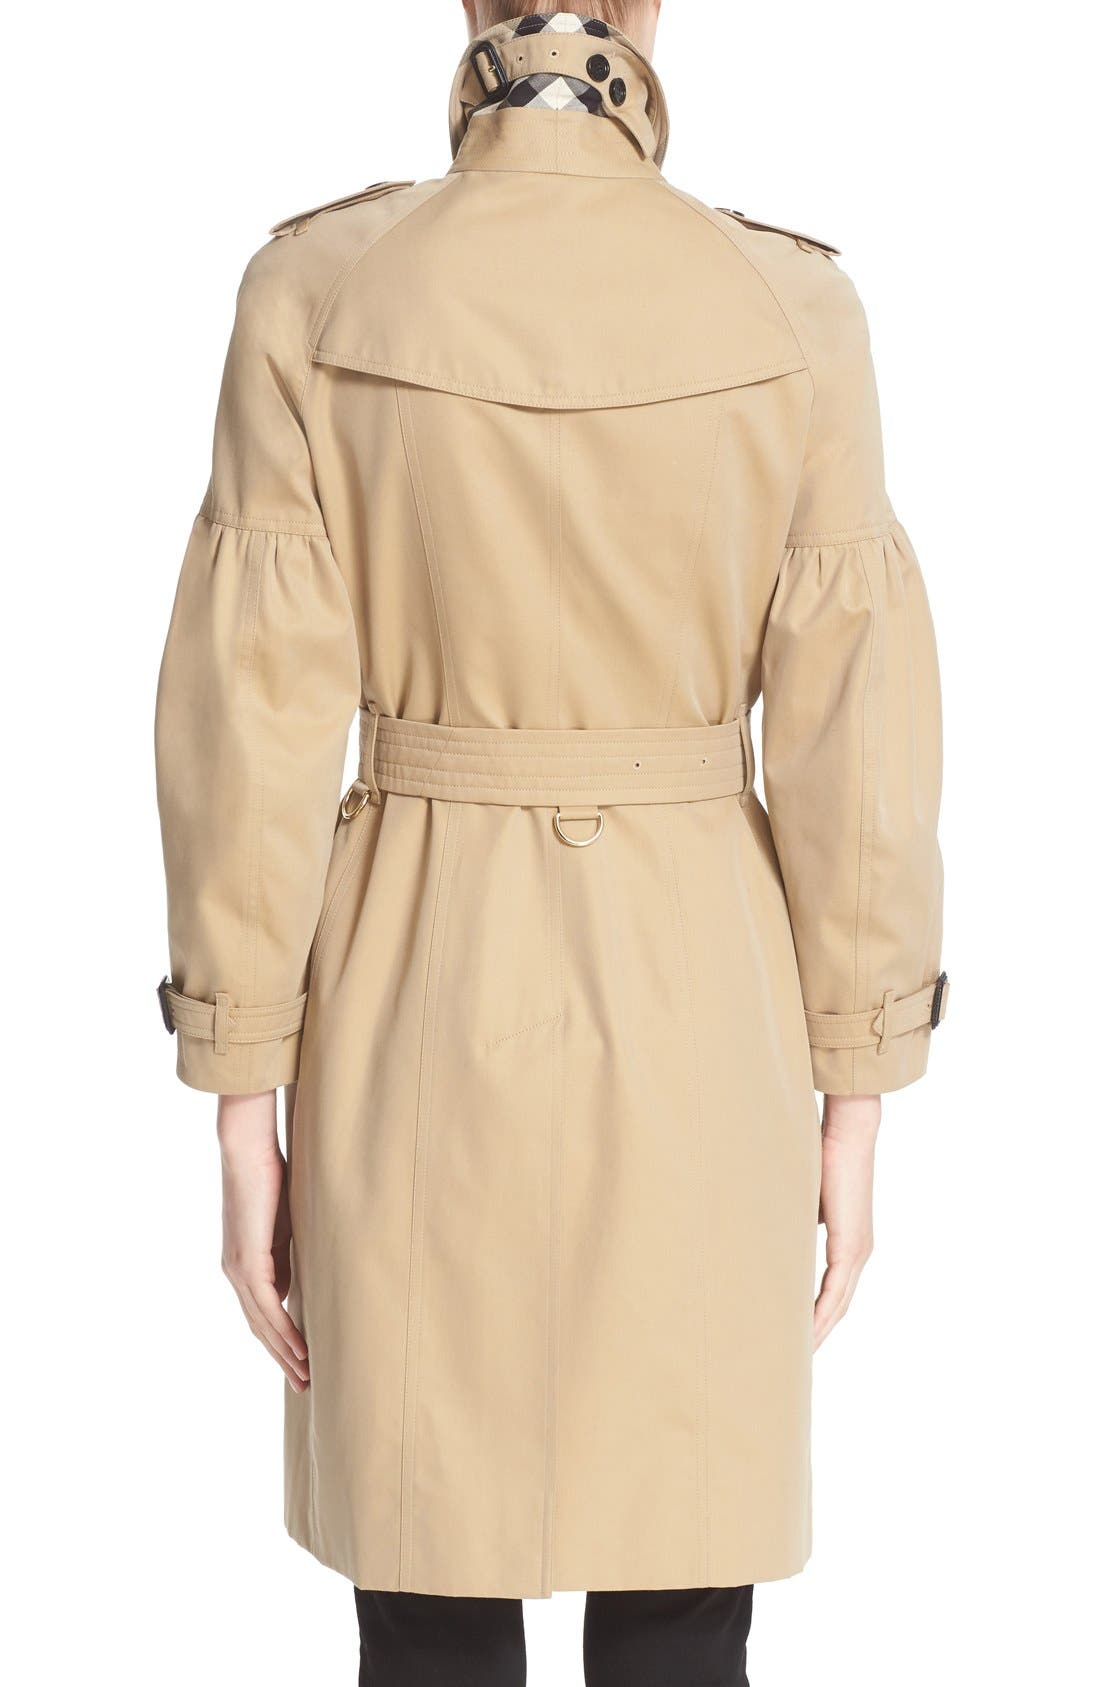 BURBERRY,                             Redhill Puff Sleeve Cotton Trench,                             Alternate thumbnail 4, color,                             250